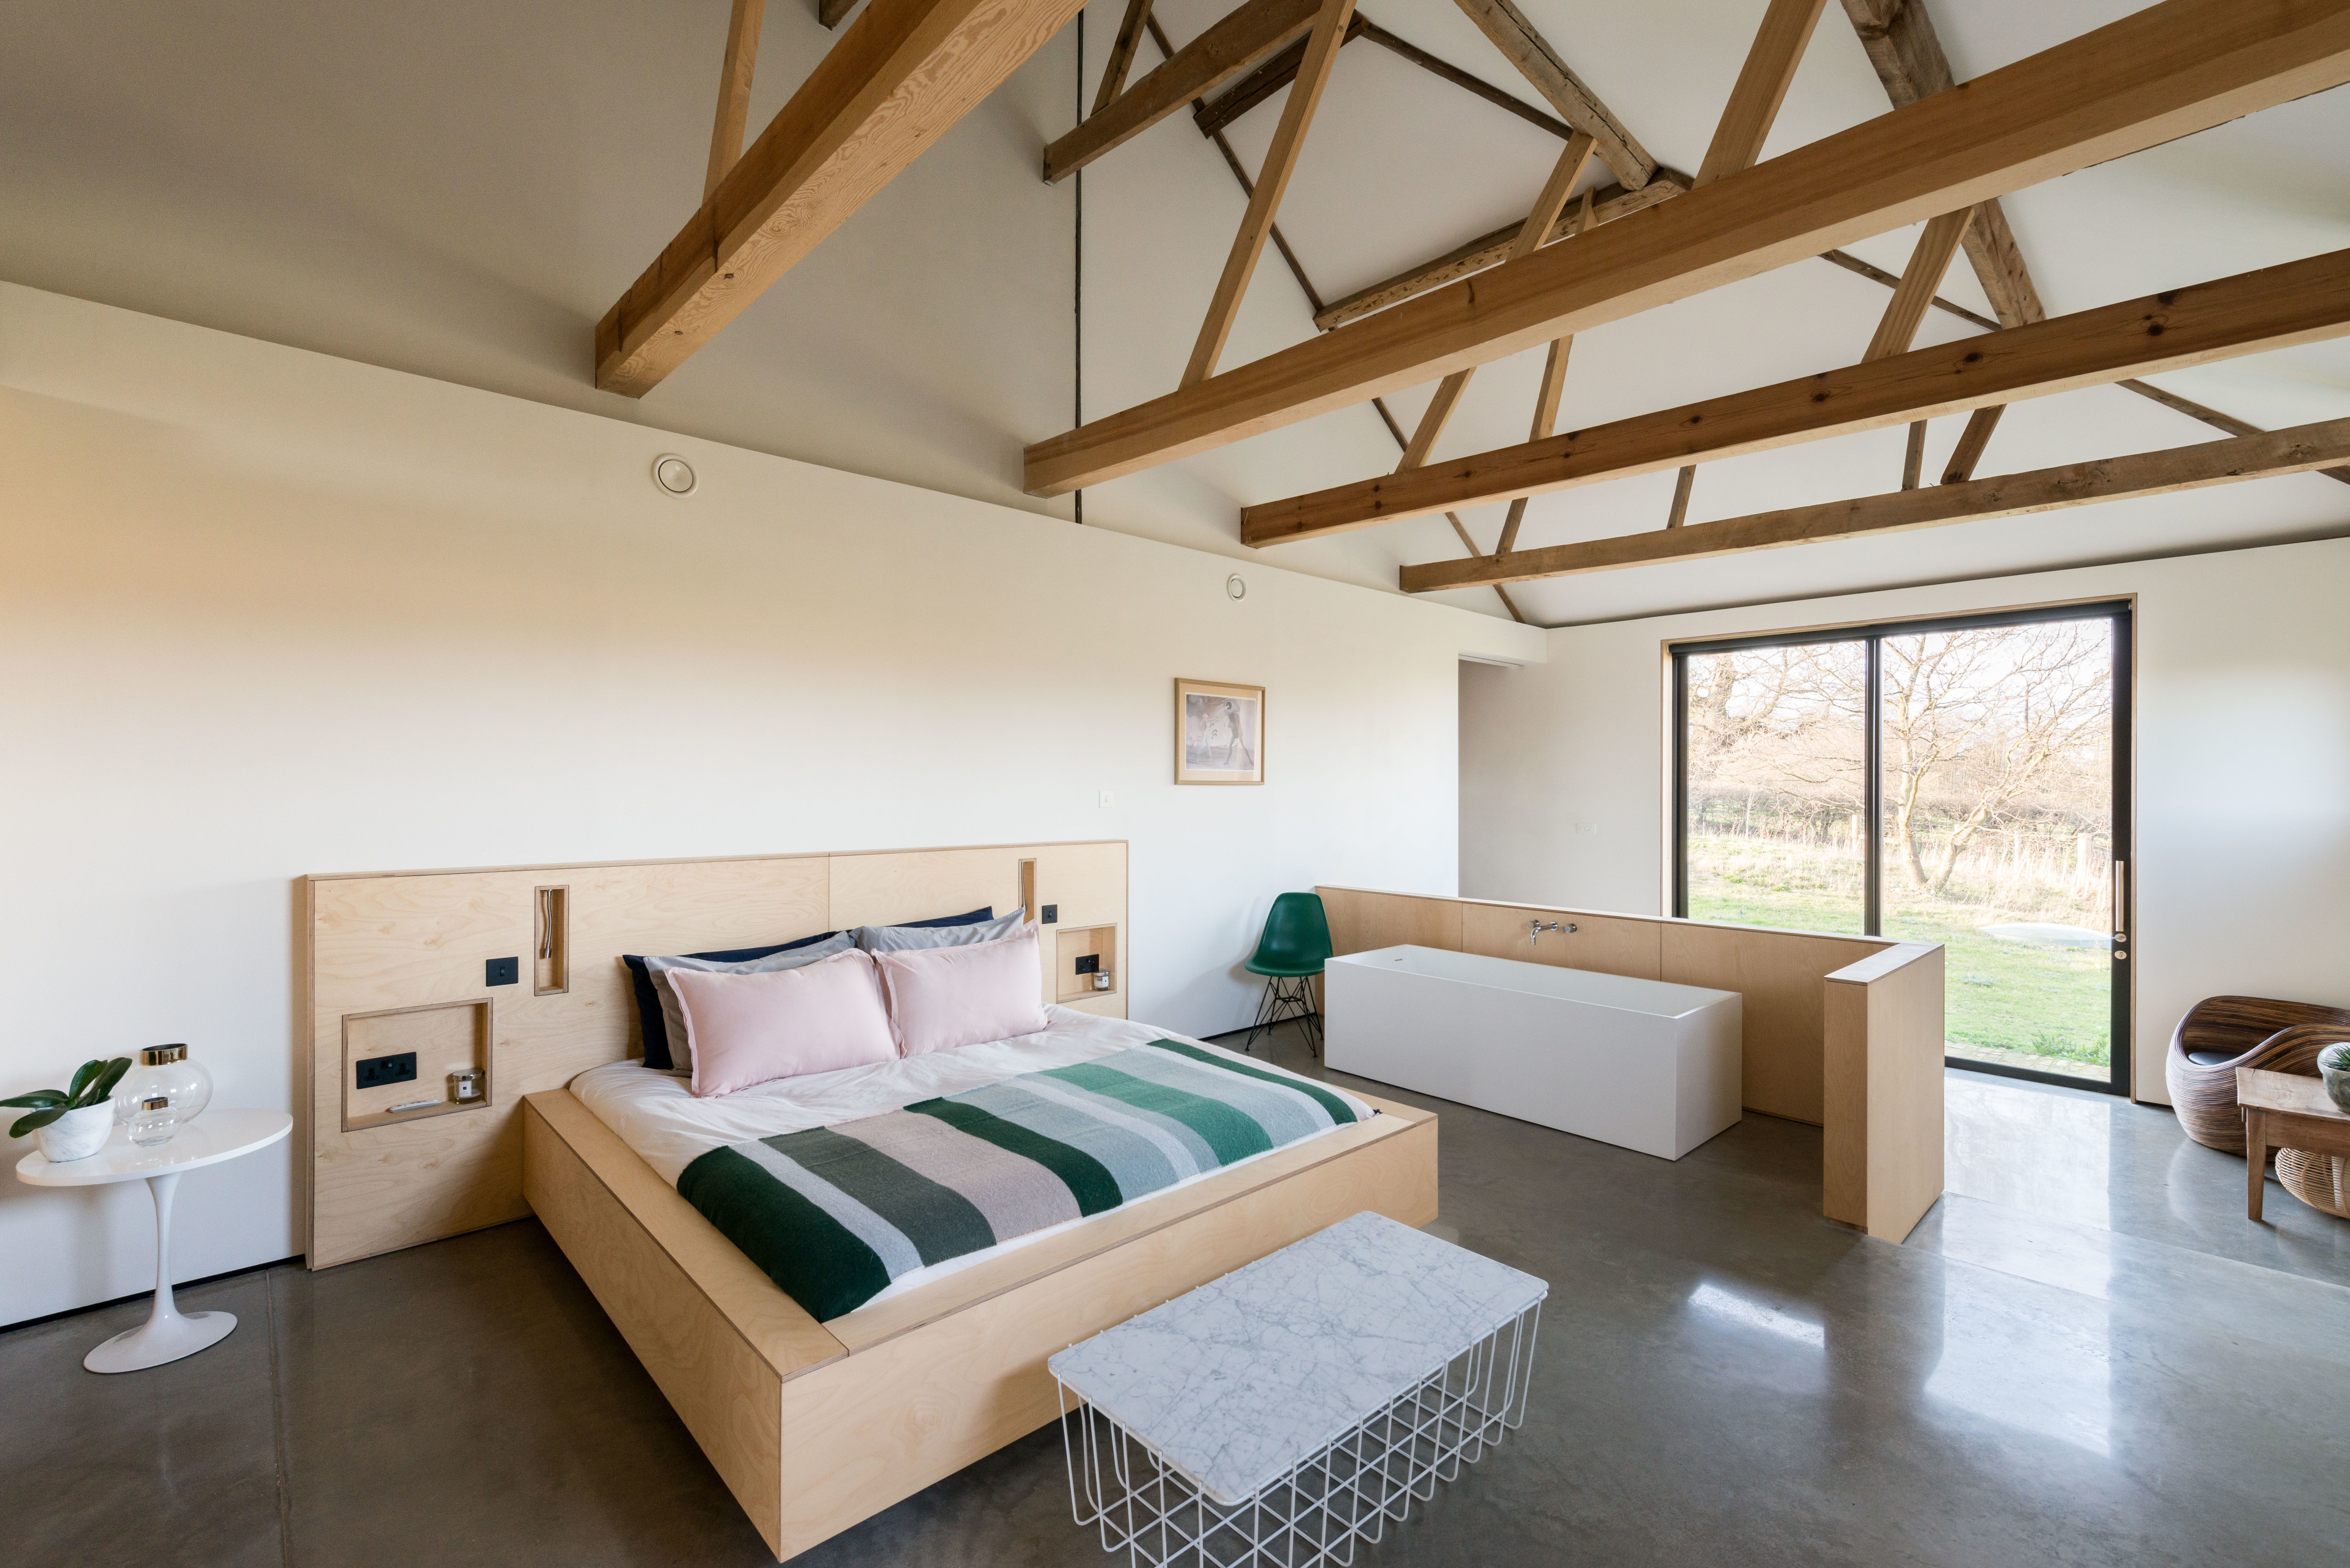 Minimalist interiors the modern house a suffolk barn home with soaring ceilings listed at 1 95m dwell